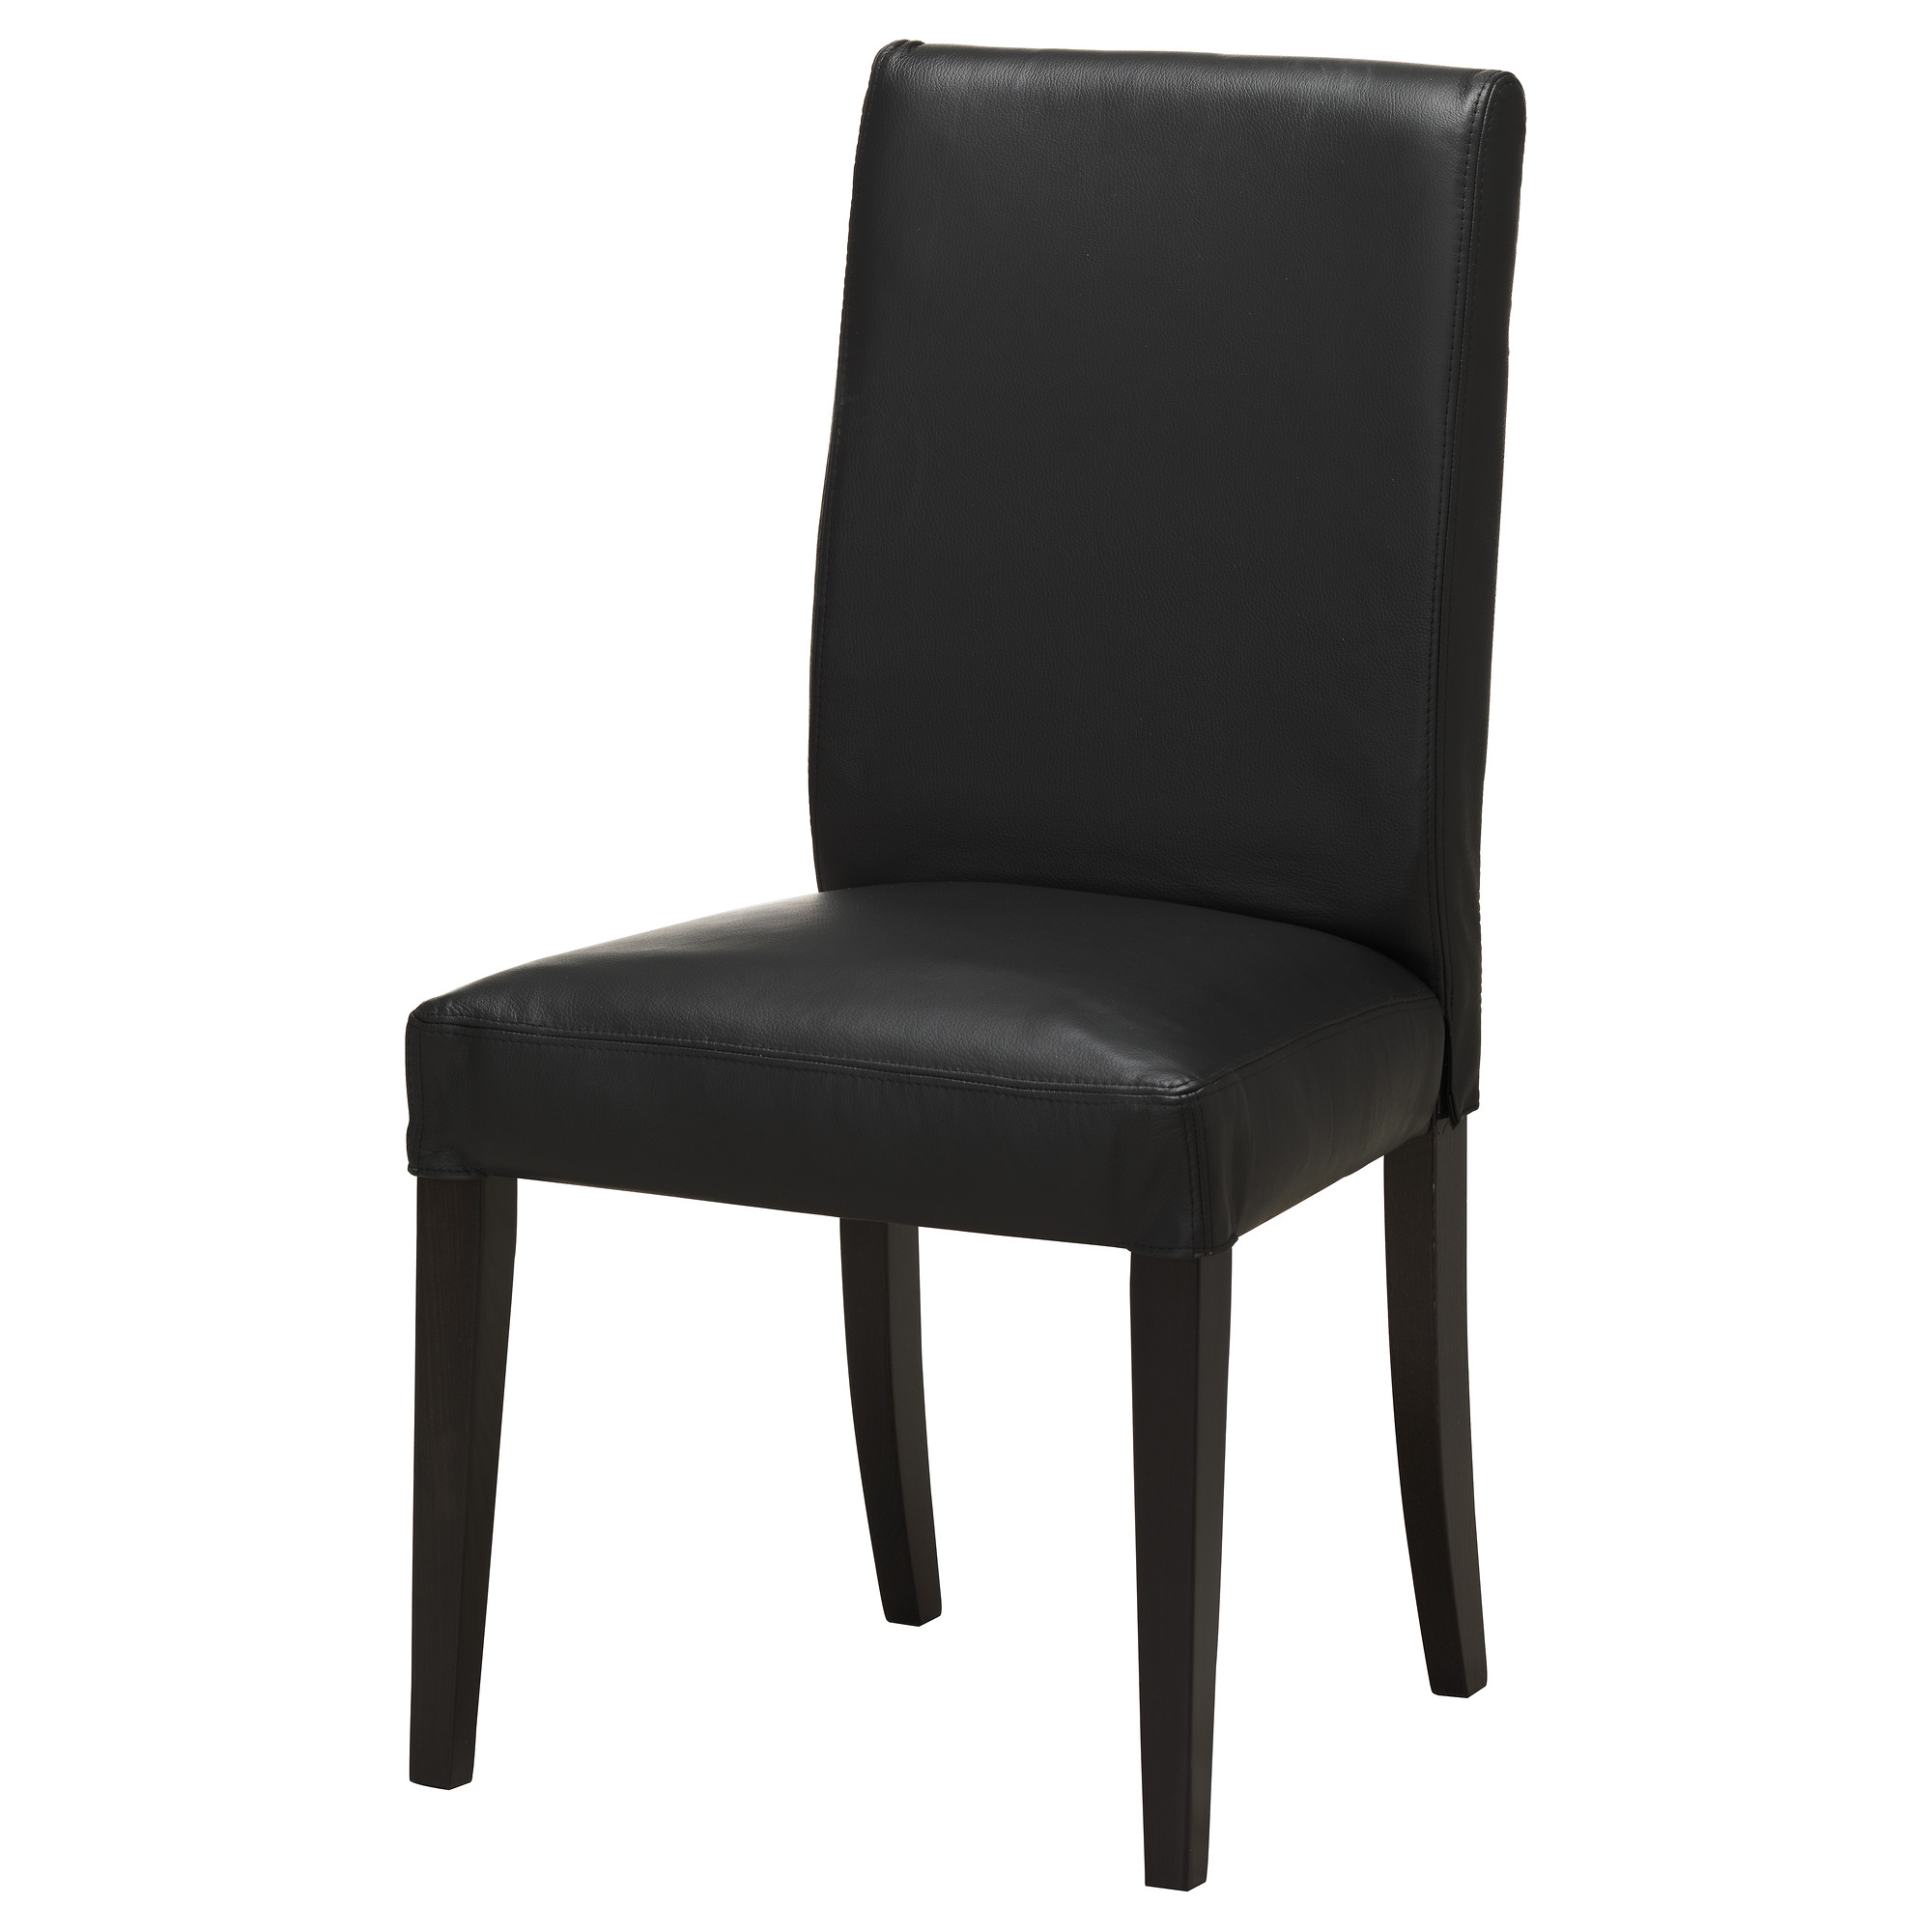 Black chair and white chair - Henriksdal Chair Brown Black Glose Black Tested For 243 Lb Width